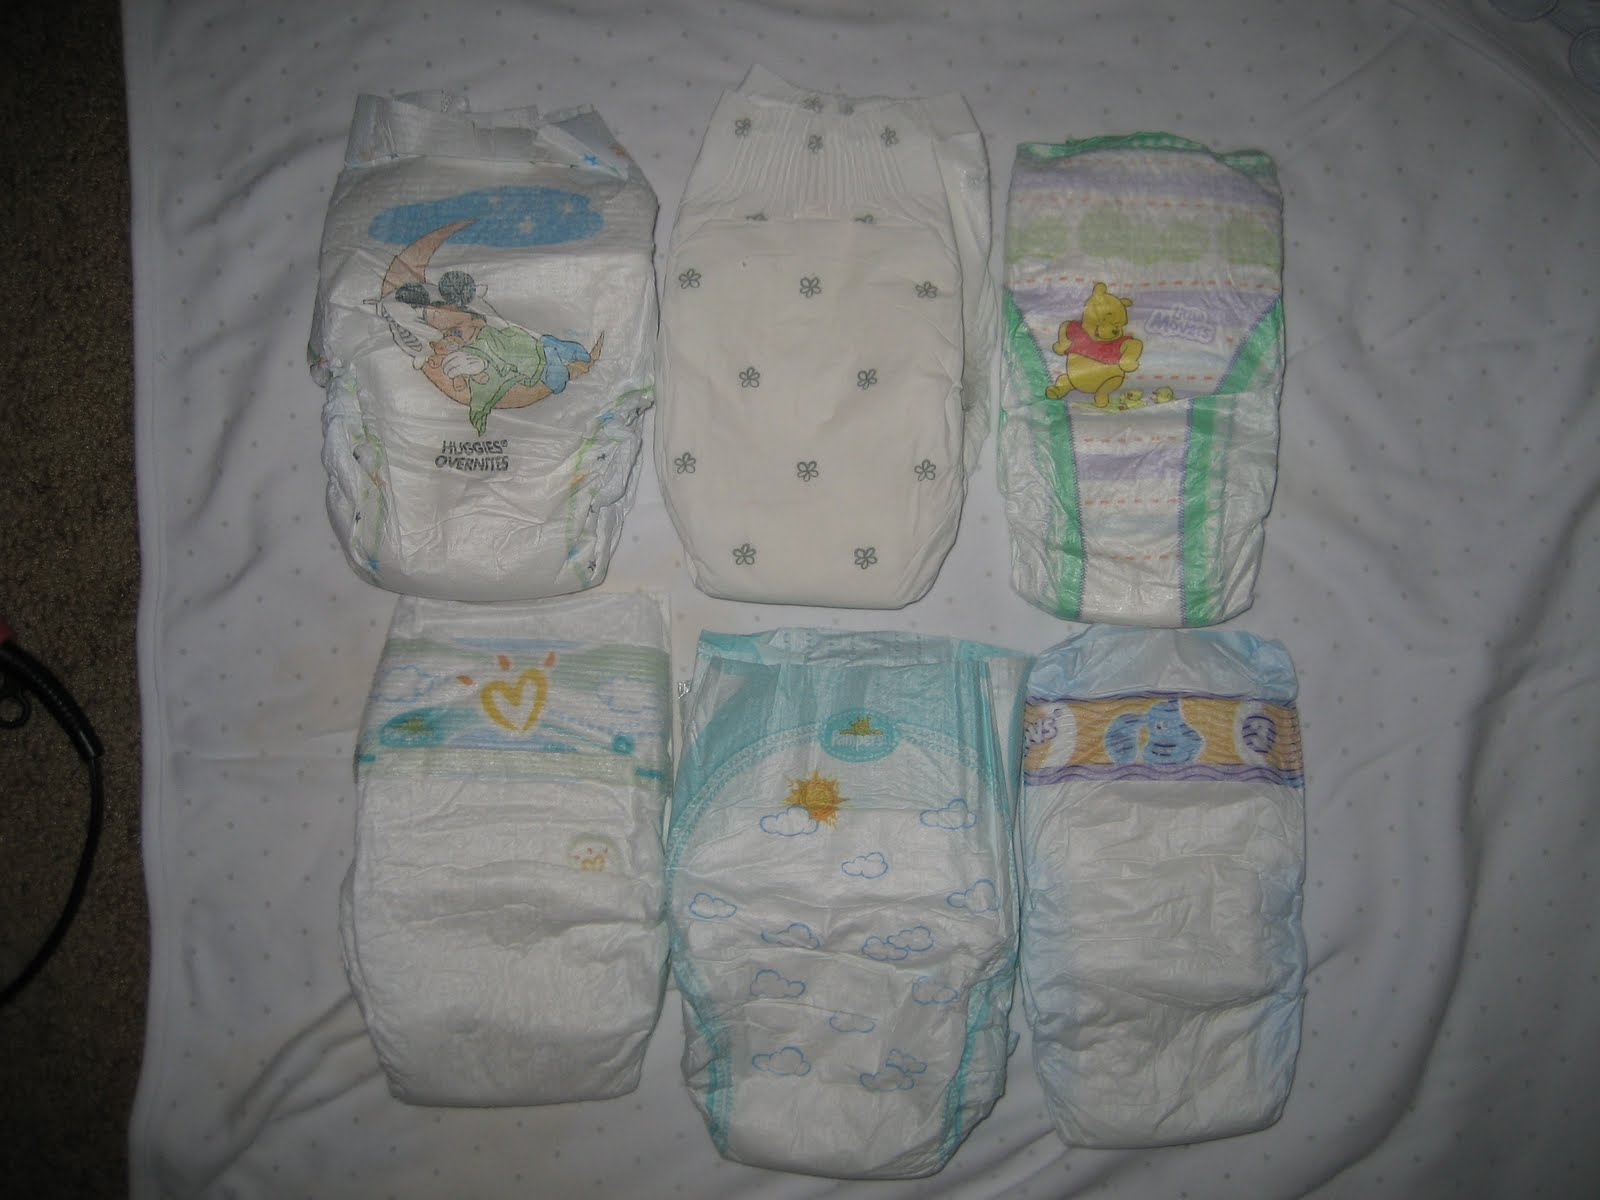 forexnetwork.tk: pampers cruisers size 6. From The Community. based on daily size 6 usage) Pampers Cruisers diapers are designed Pampers Cruisers size 6. by Pampers. More options available: $ Other Sellers: out of 5 stars Product Features Pampers Cruisers size 6.